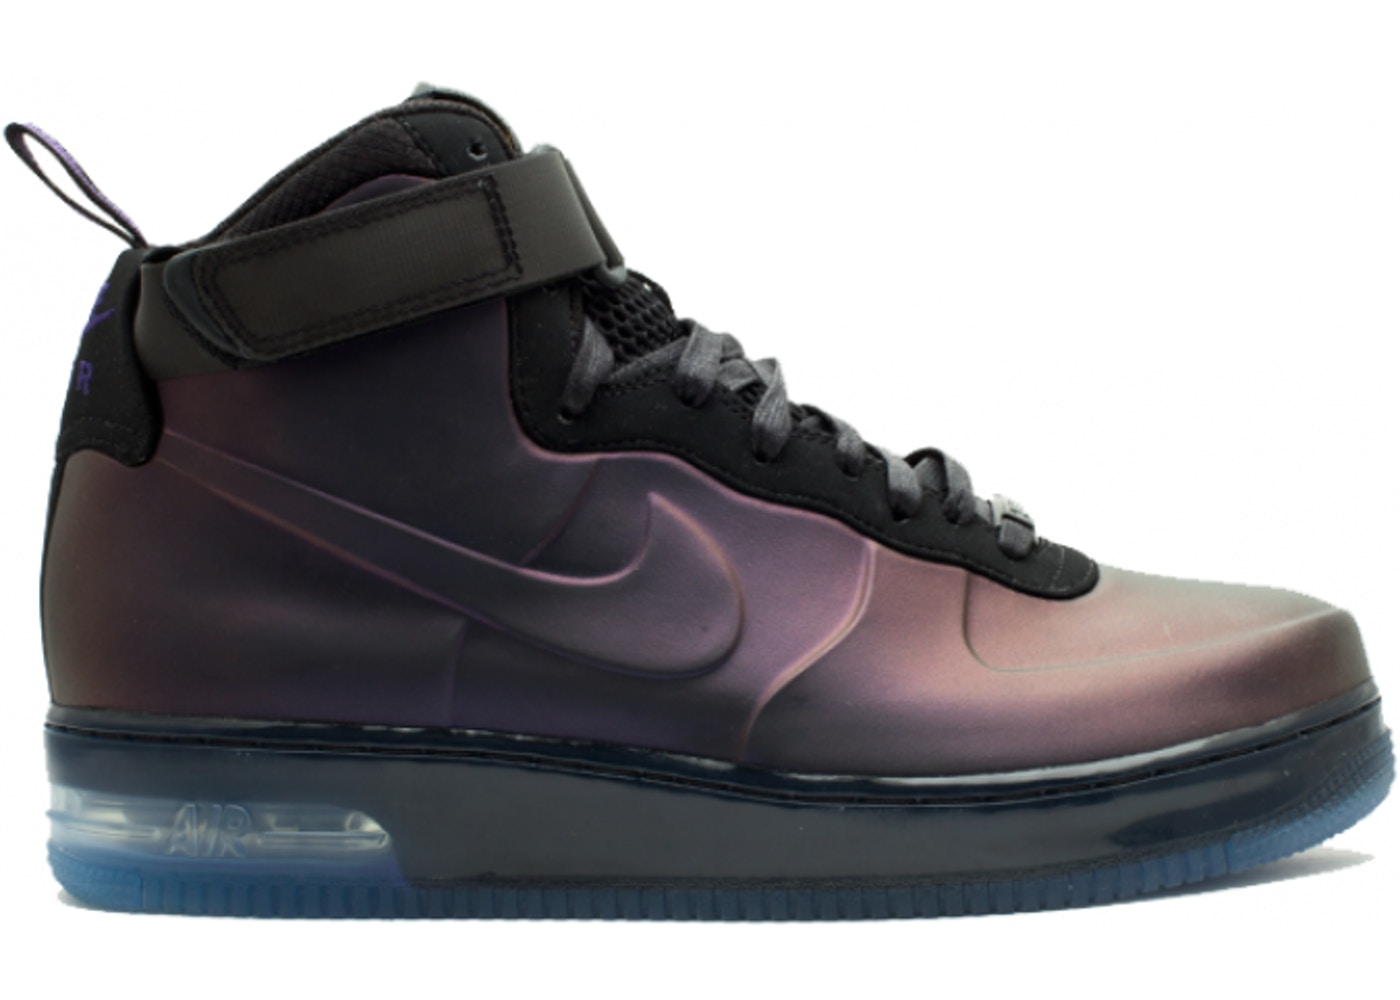 best sneakers 83c2f 3bac1 Air Force 1 High Foamposite Eggplant - 415419-550